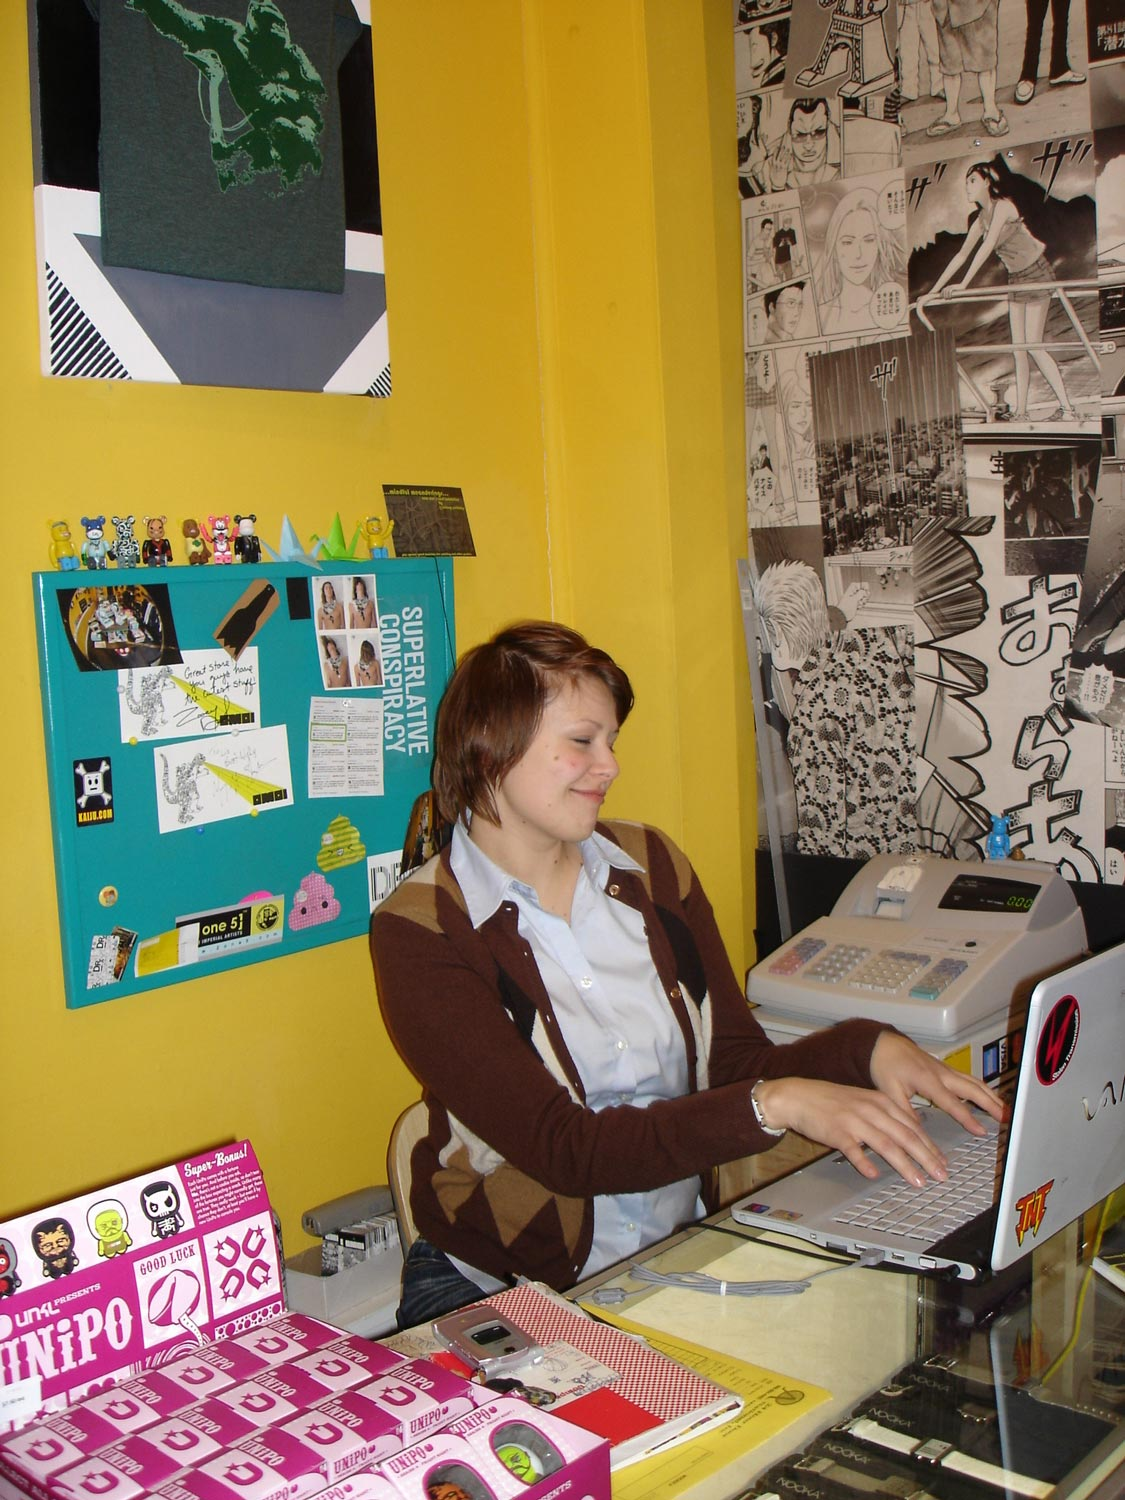 Liz says: Cheers to 15 years of 'working at the desk', which era did you know me best?